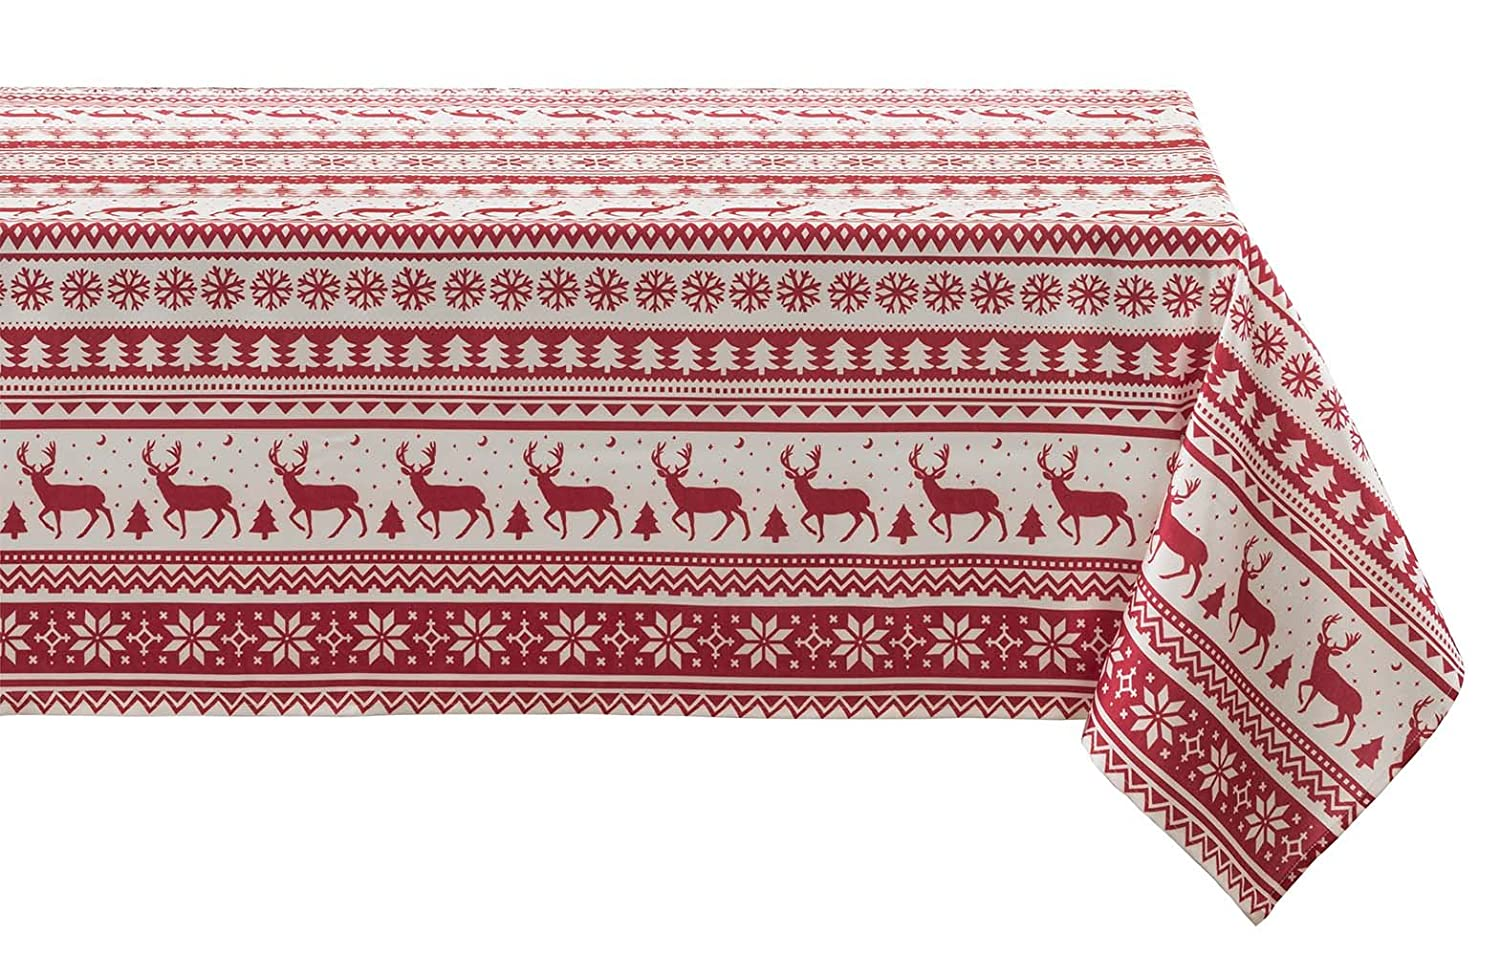 BENSON MILLS Nordic Christmas Herringbone Printed Rectangle Tablecloth, 60 by 84-Inch Creative Dining Group 45110